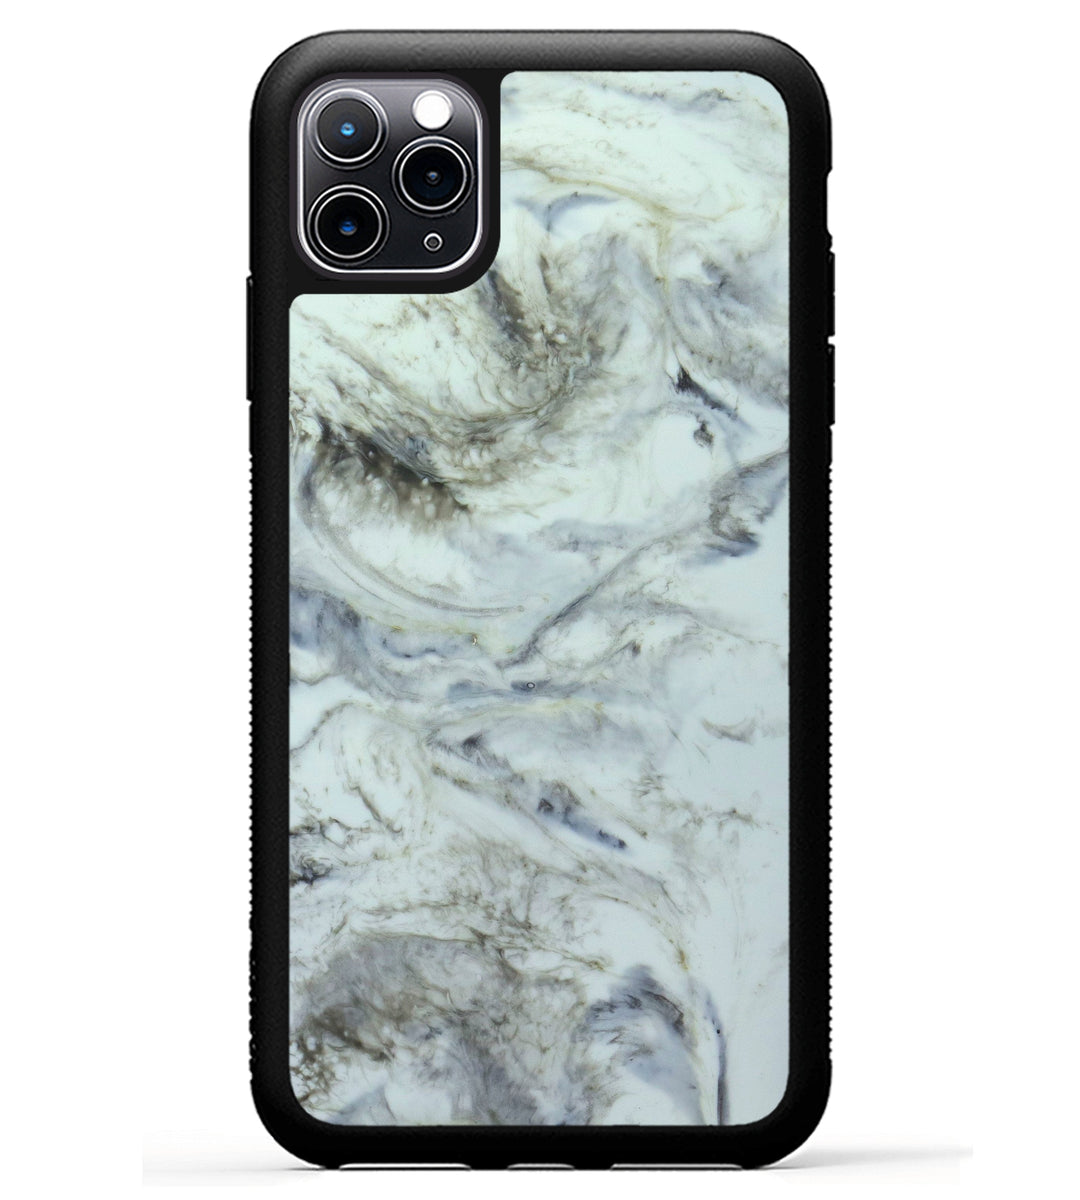 iPhone 11 Pro Max ResinArt Phone Case - Dyke (Black & White, 347835)